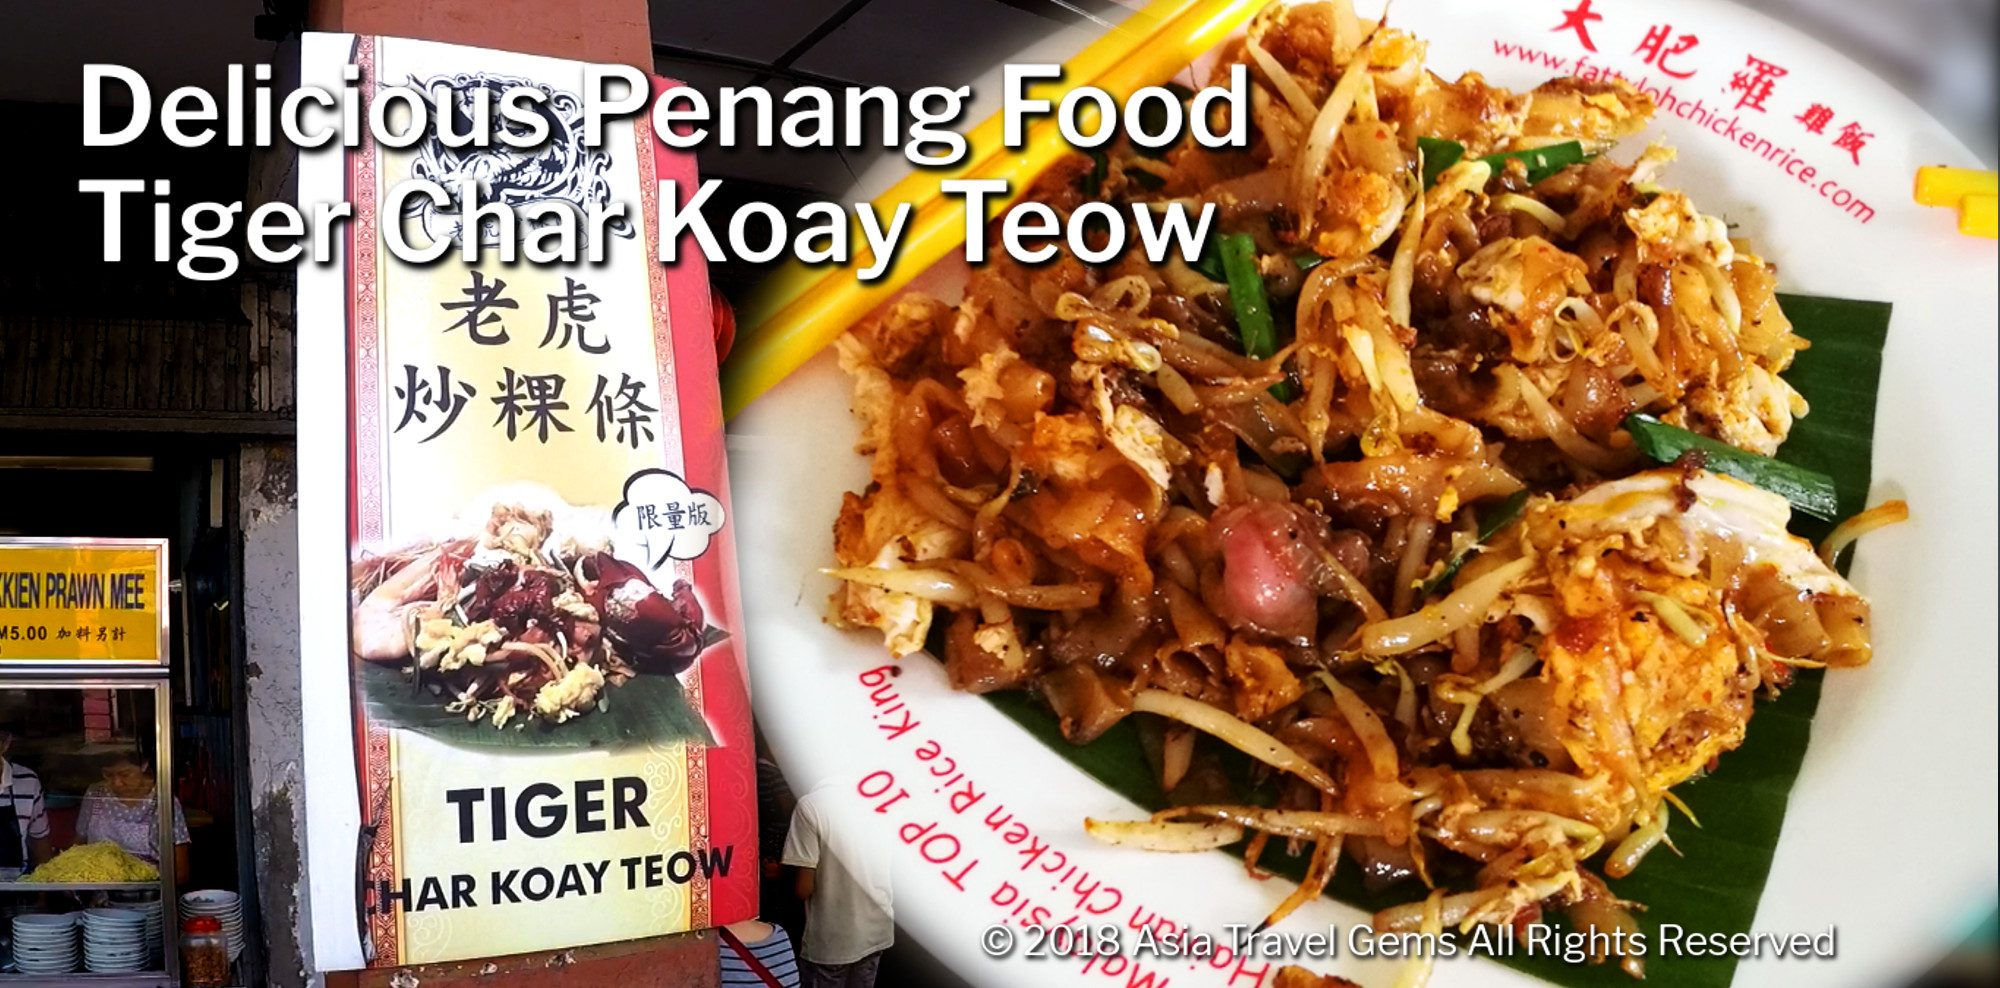 Penang Food - Tiger Char Koay Teow - header